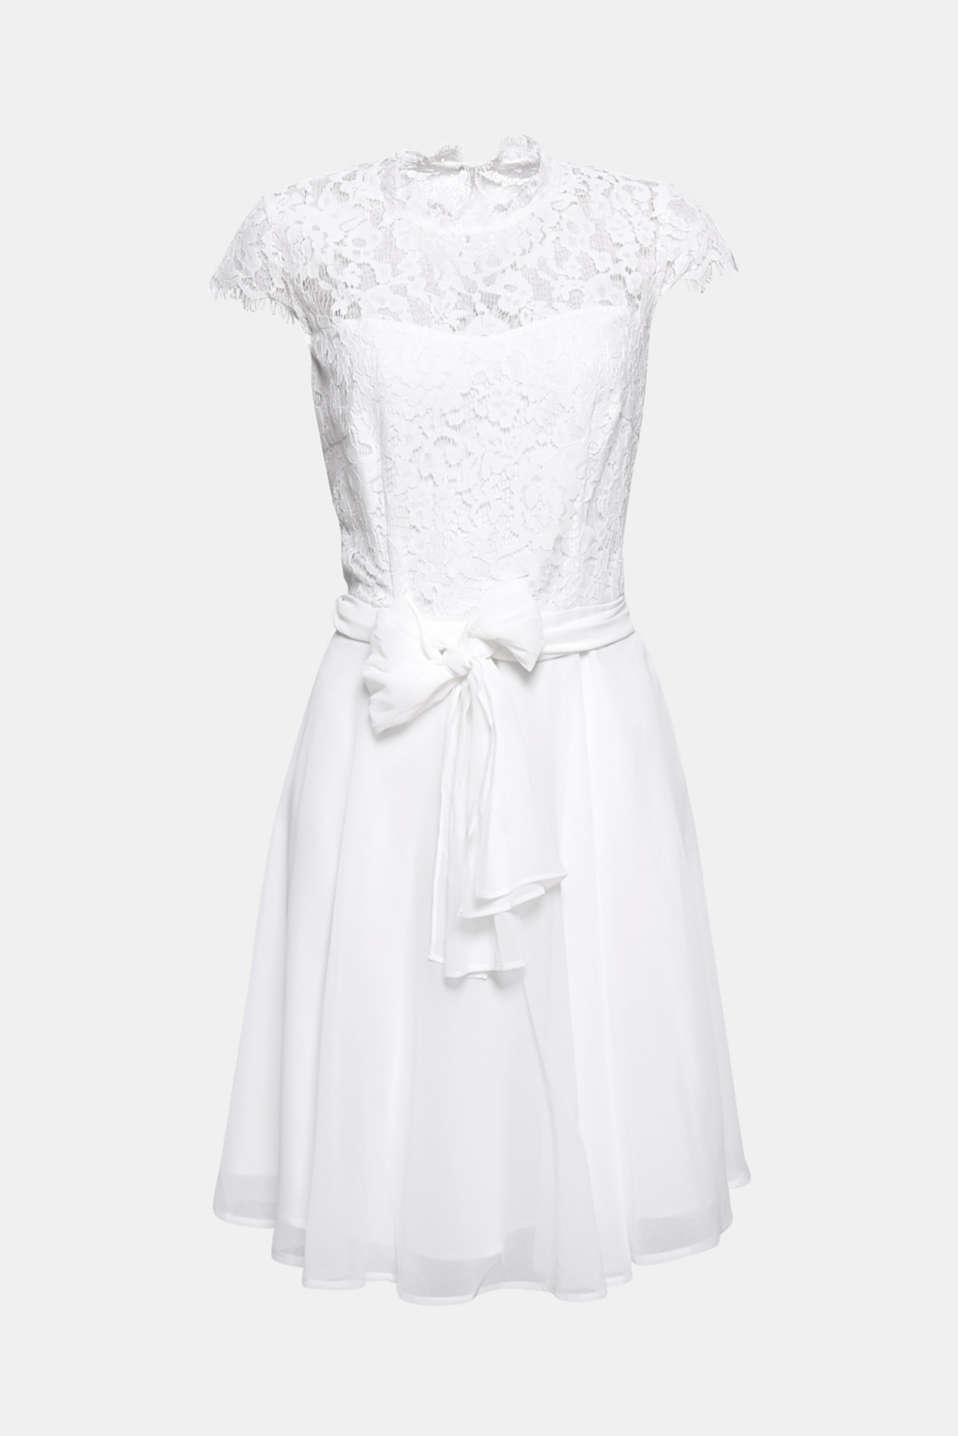 This dress with a lace top section and a chiffon skirt is a highlight for different occasions – depending on the colour!